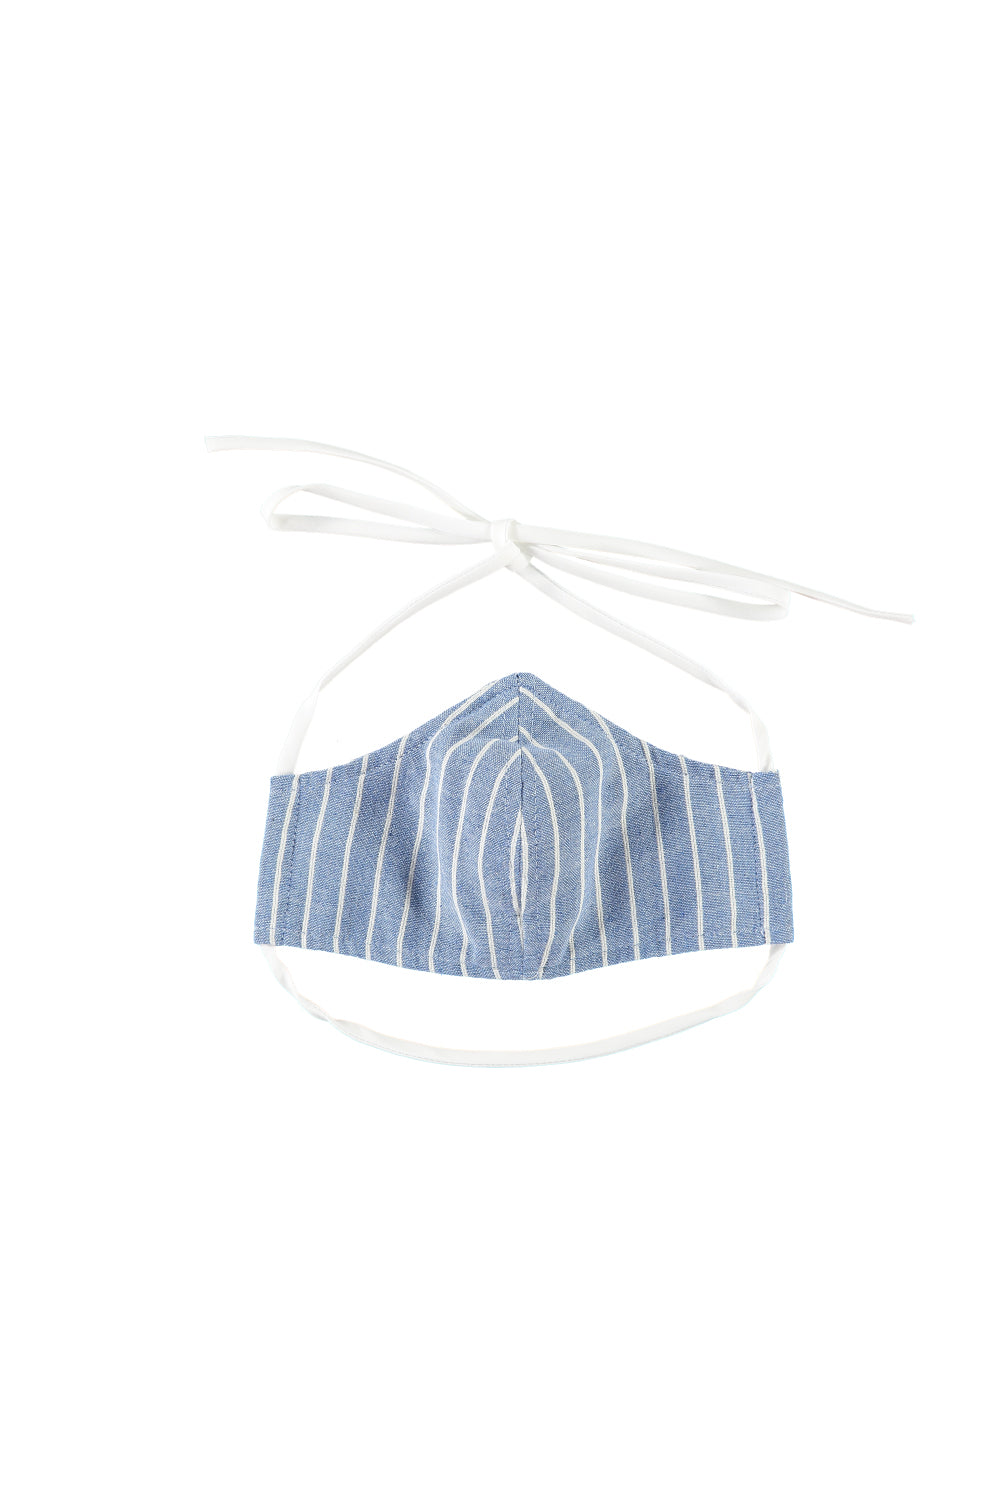 3 Ply Face Mask - Chambray